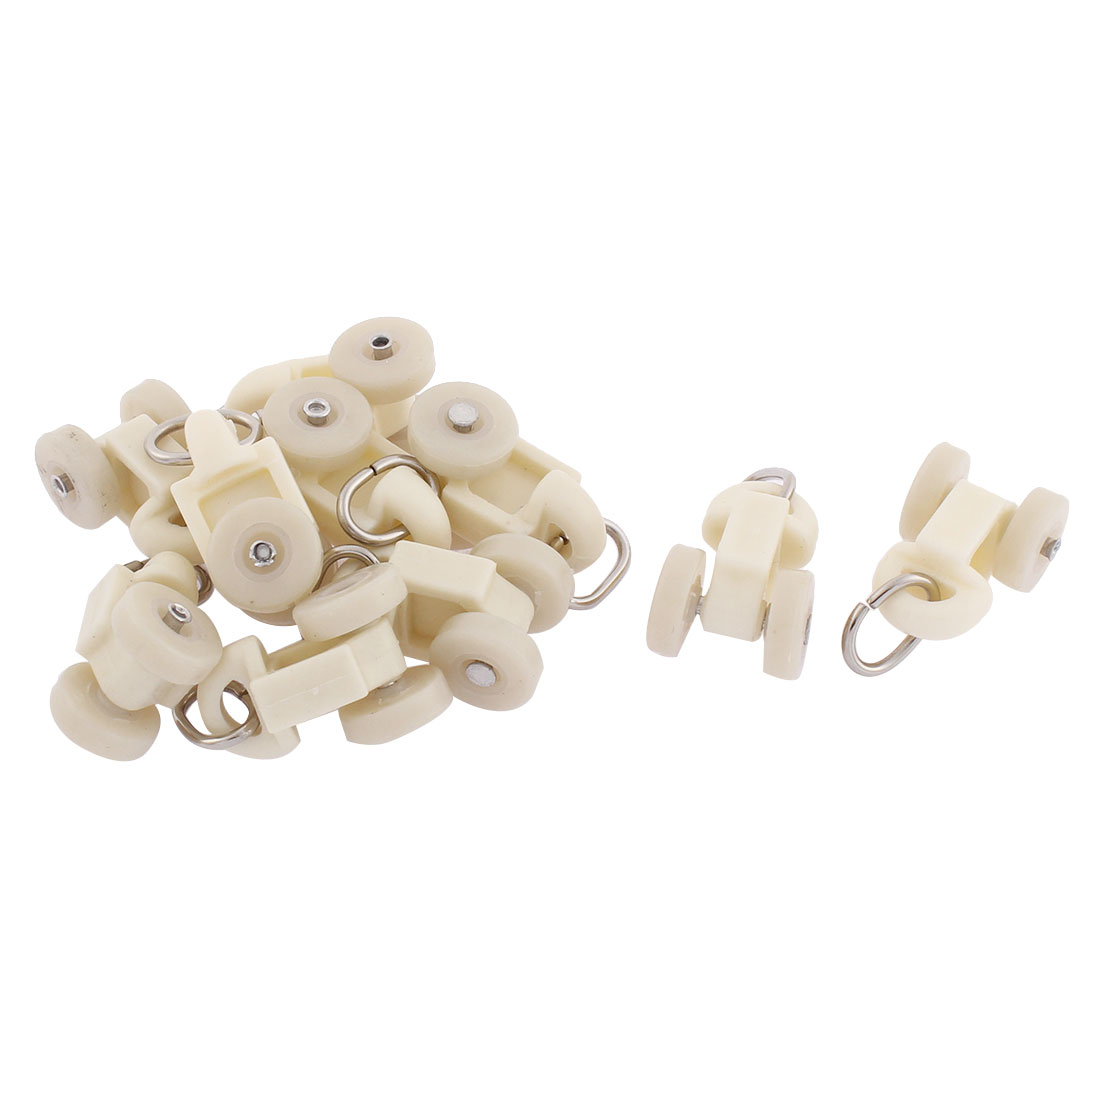 Home Plastic Curtain Track Carrier Roller 14mm Dia Wheel White 10 Pcs